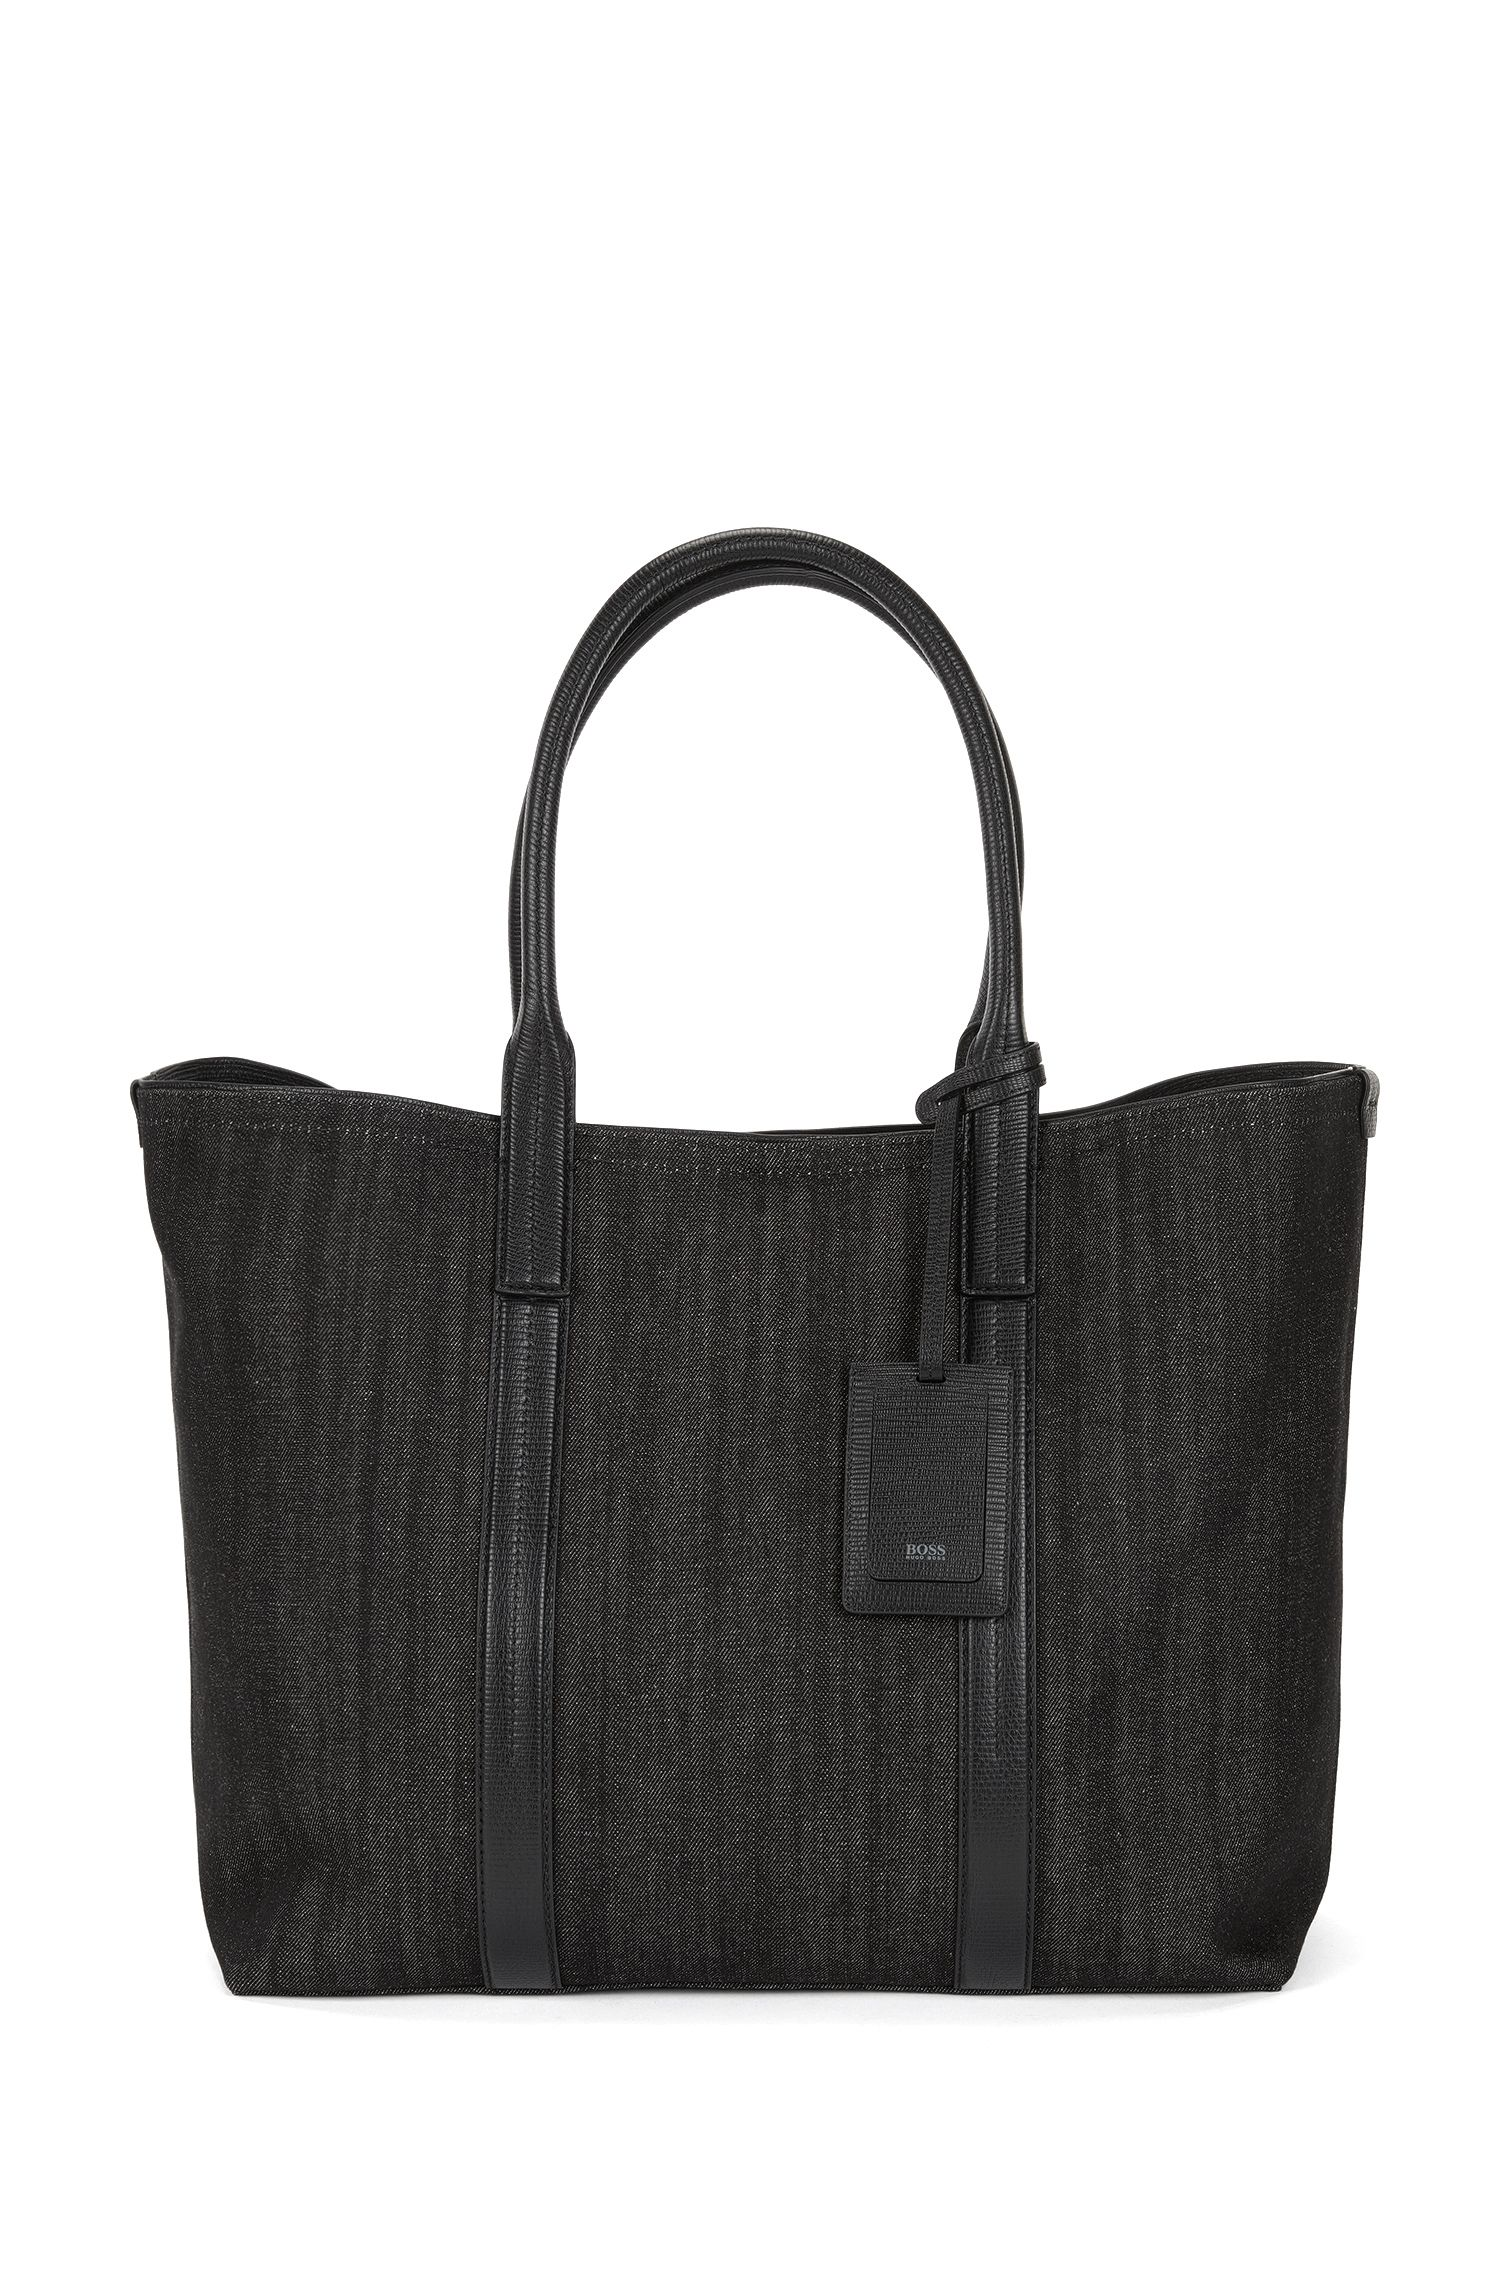 Italian-denim tote bag with leather trims